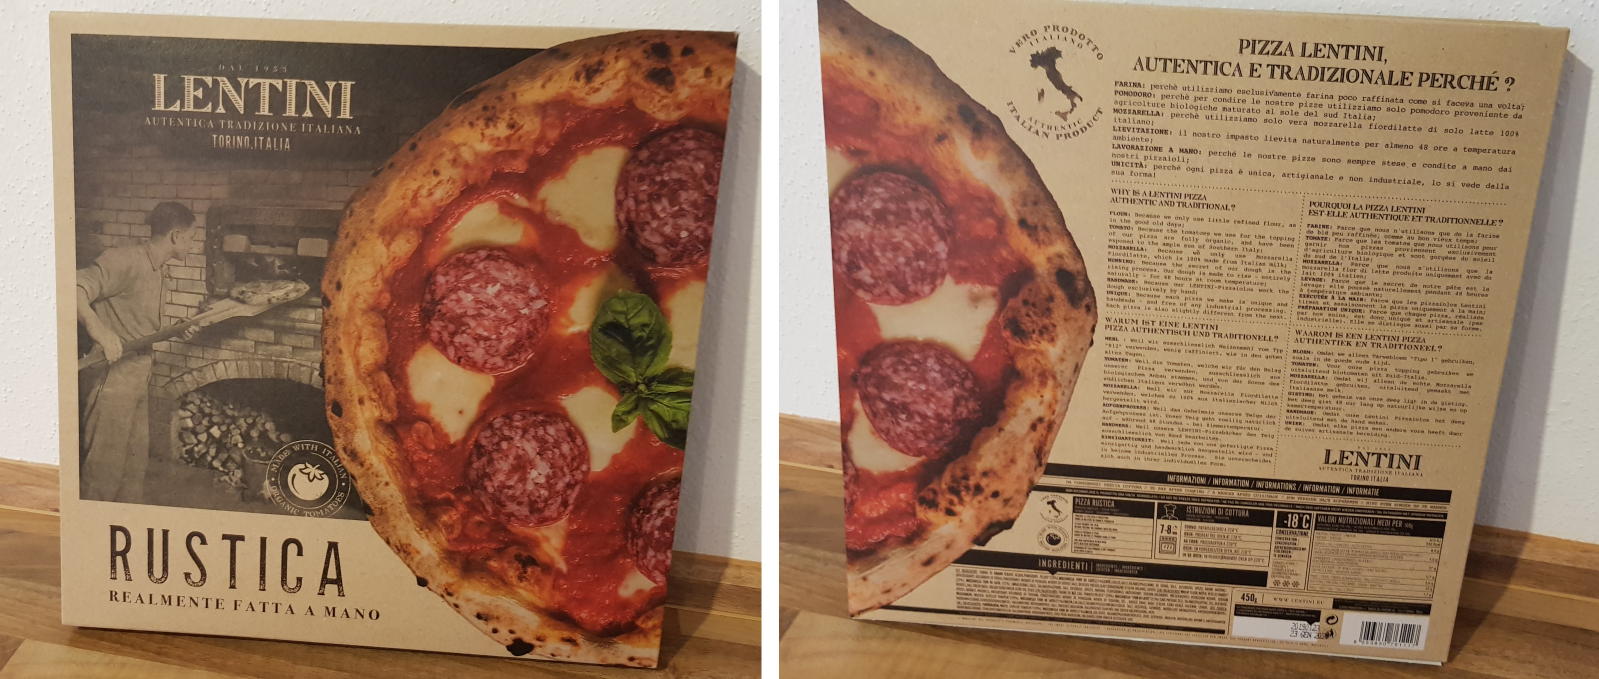 Lentini Pizza Verpackung